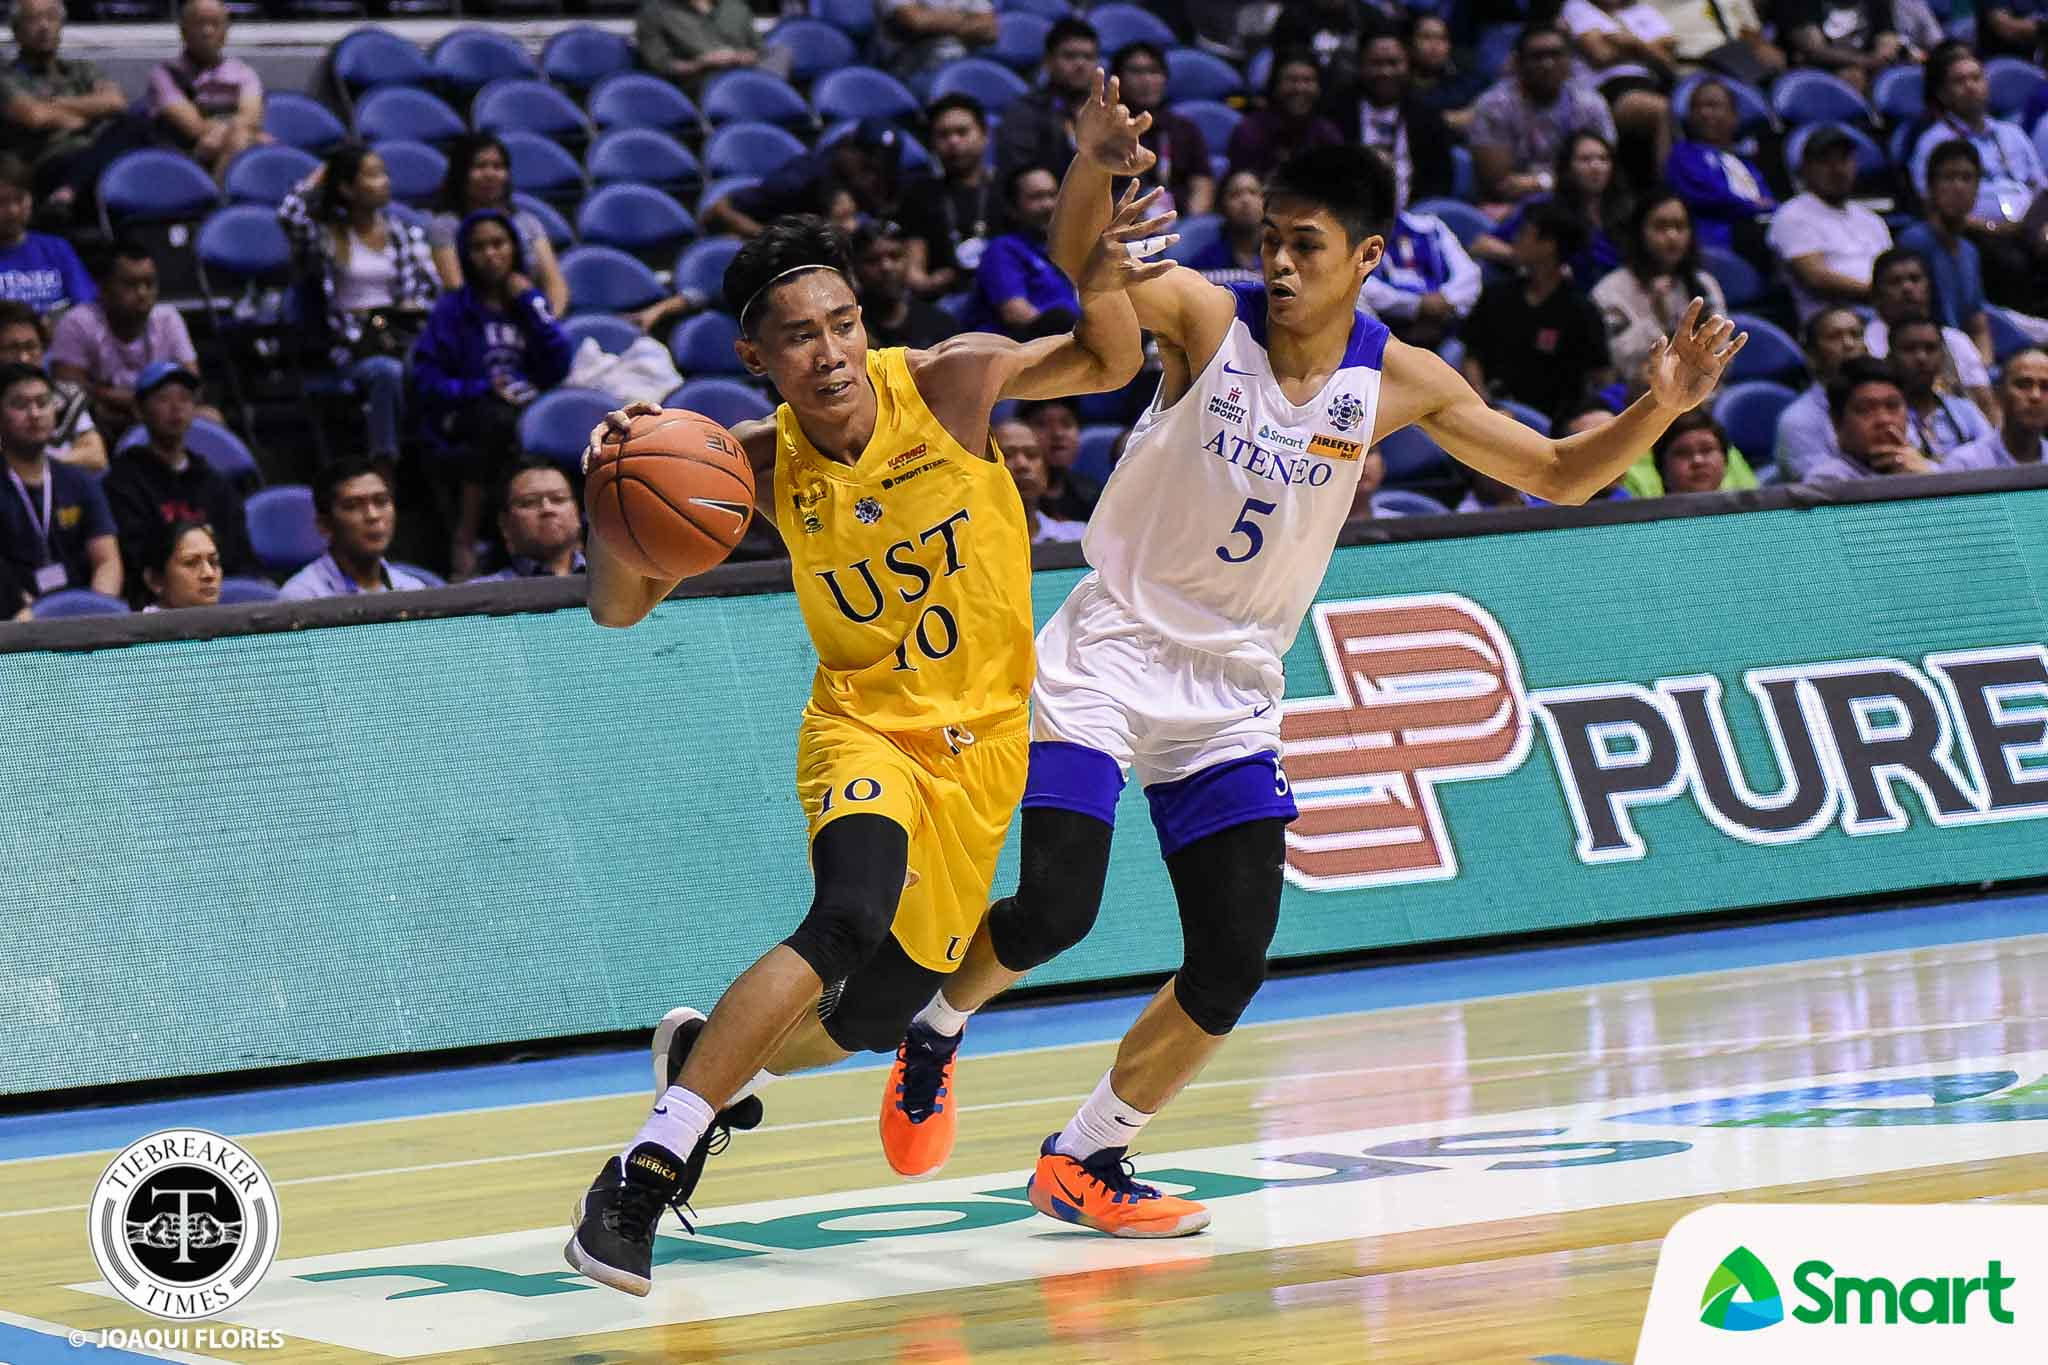 Tiebreaker Times Rhenz Abando receives pleasant surprise after UST loss to Ateneo Basketball News UAAP UST  UST Men's Basketball UAAP Season 82 Men's Basketball UAAP Season 82 Thirdy Ravena